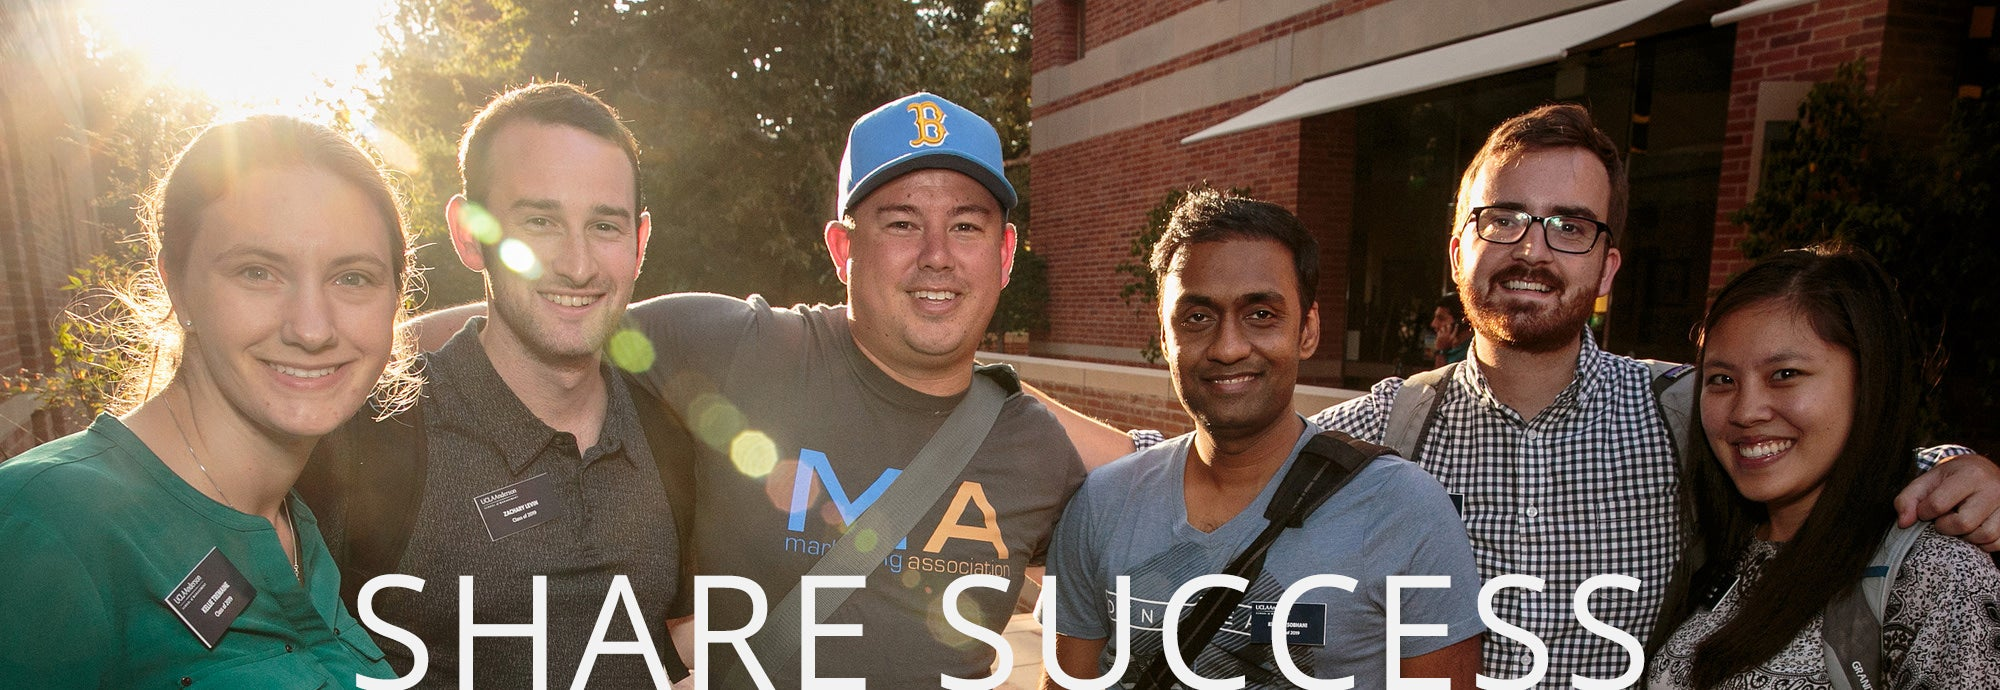 our character ucla anderson school of management three pillars encompass the intrinsic values of ucla anderson